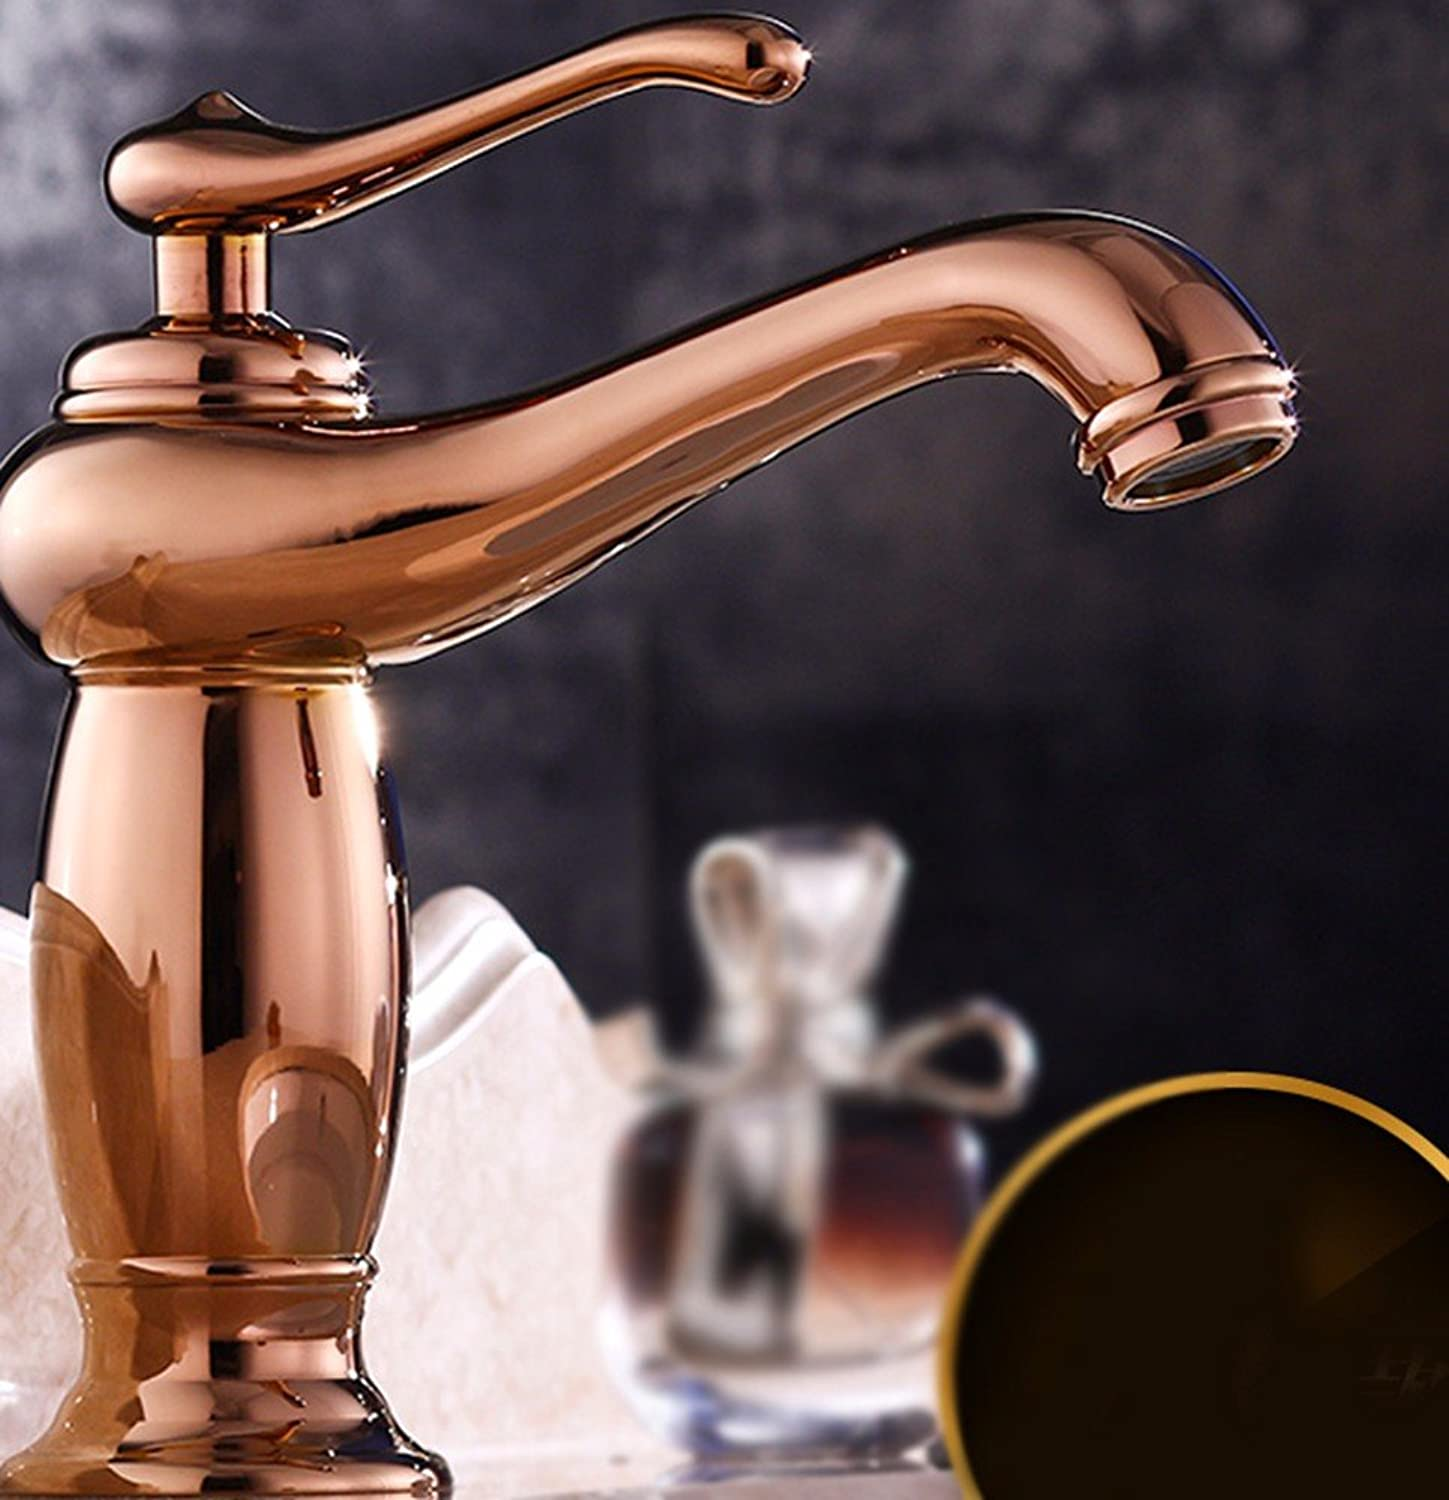 Hlluya Professional Sink Mixer Tap Kitchen Faucet Hot and cold, full of copper, washbasin, redate, single handle single hole sink faucet,I